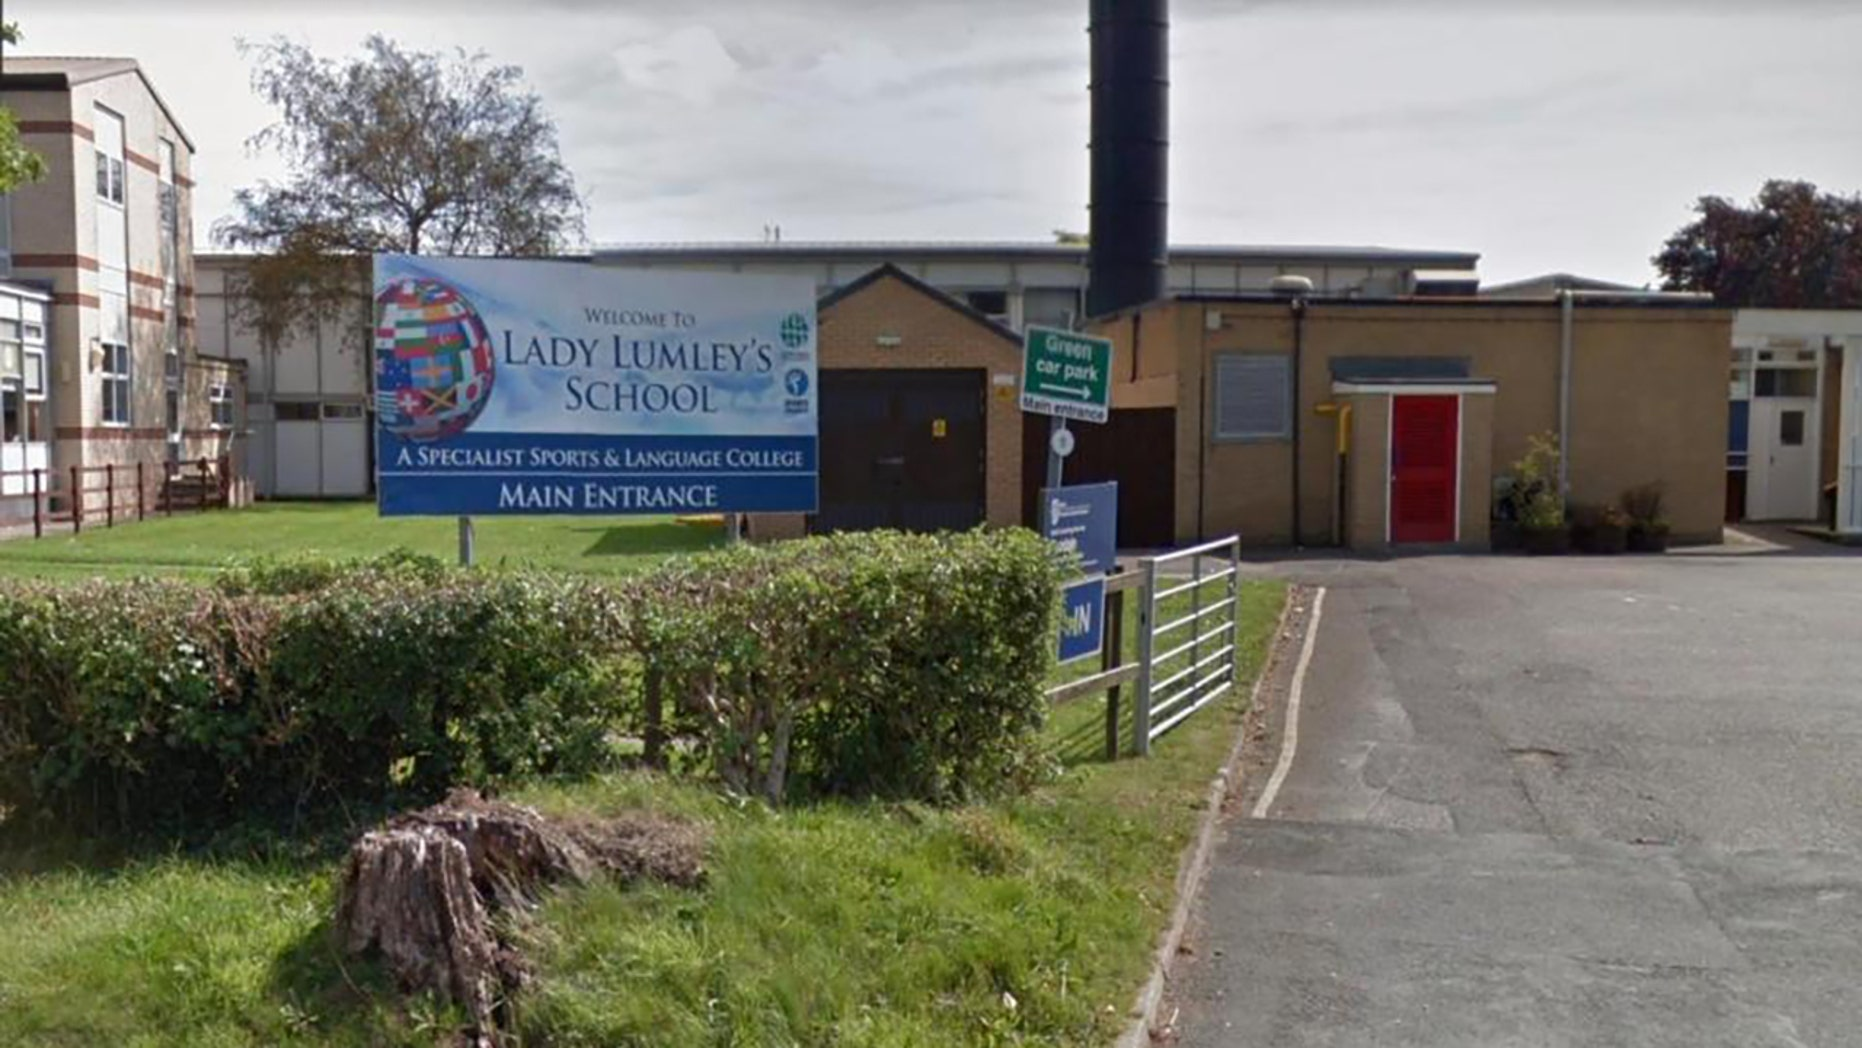 Lady Lumley's School in Pickering, North Yorks., is forcing its pupils to make 'persuasive arguments' about the true meaning of Christmas to reverse the ban.